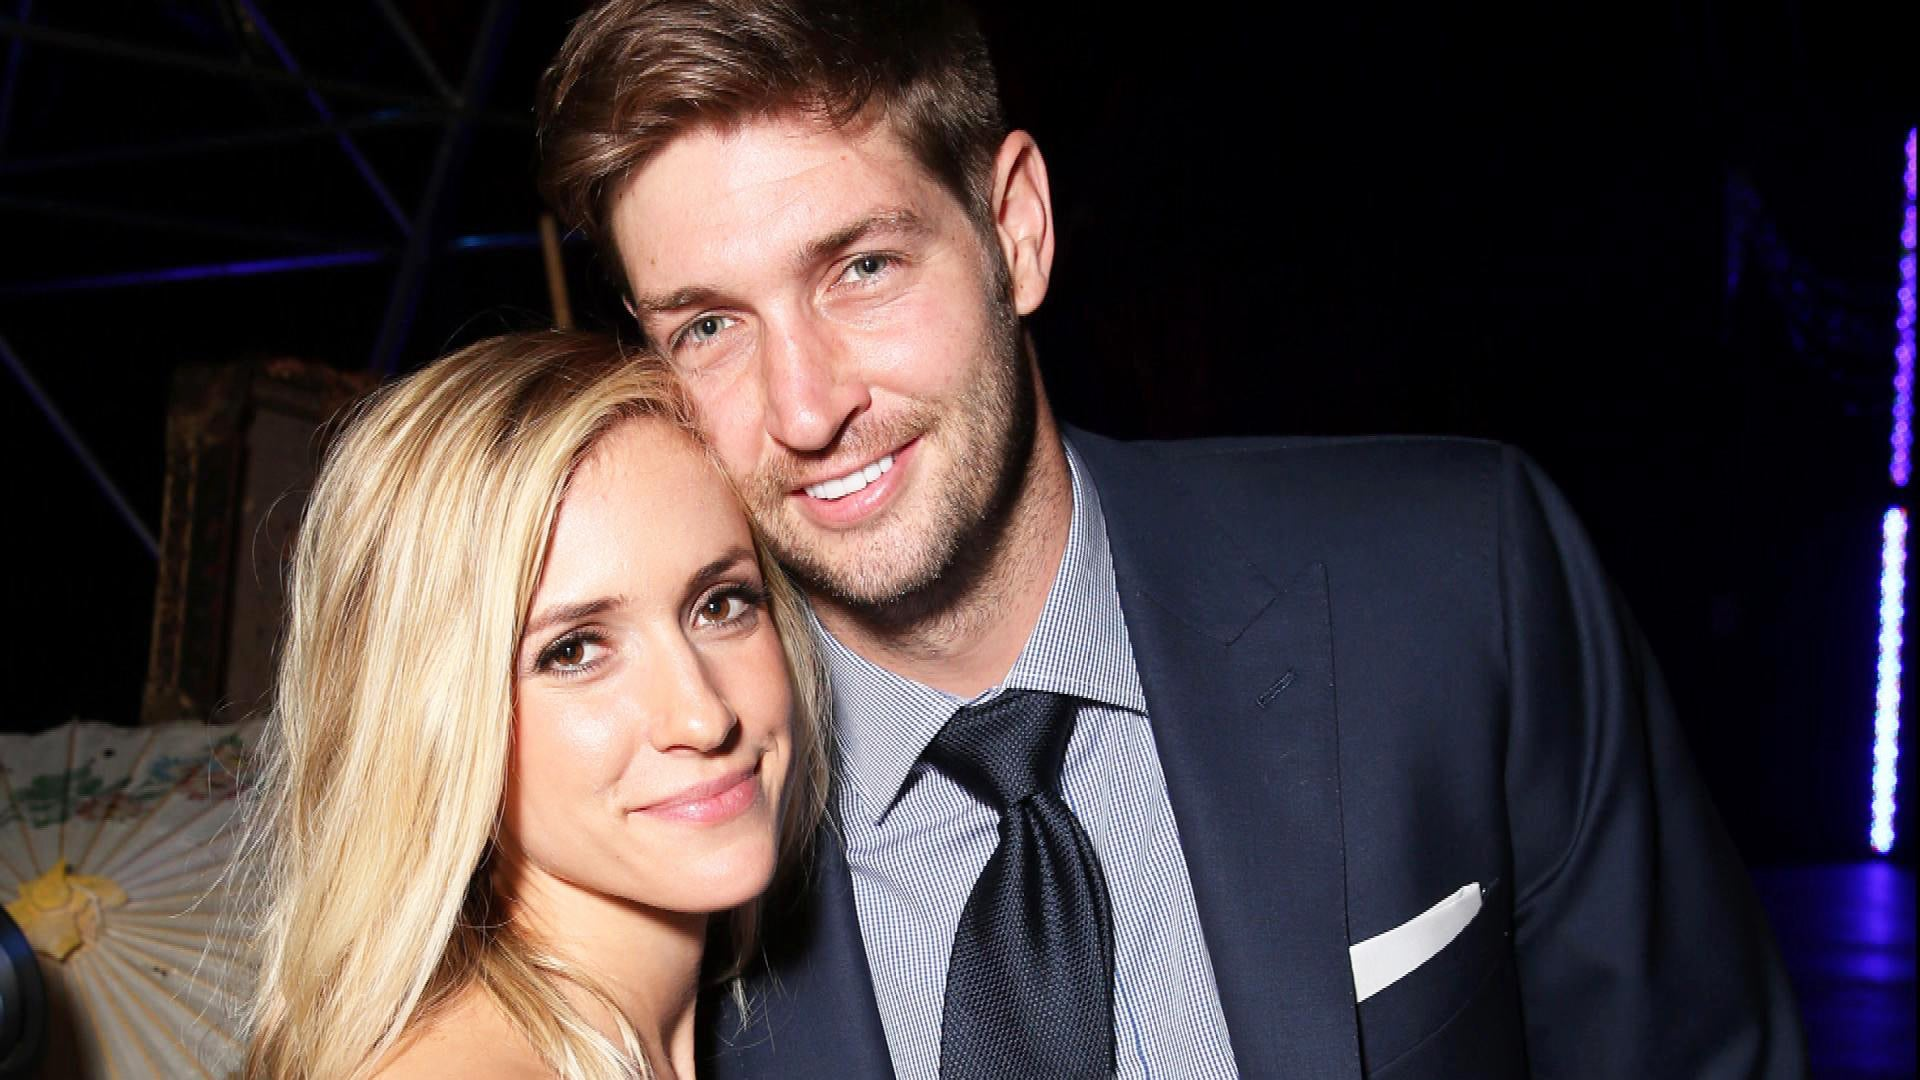 What Kristin Cavallari's Divorce Filing Documents Reveal About Her Relationship With Jay Cutler